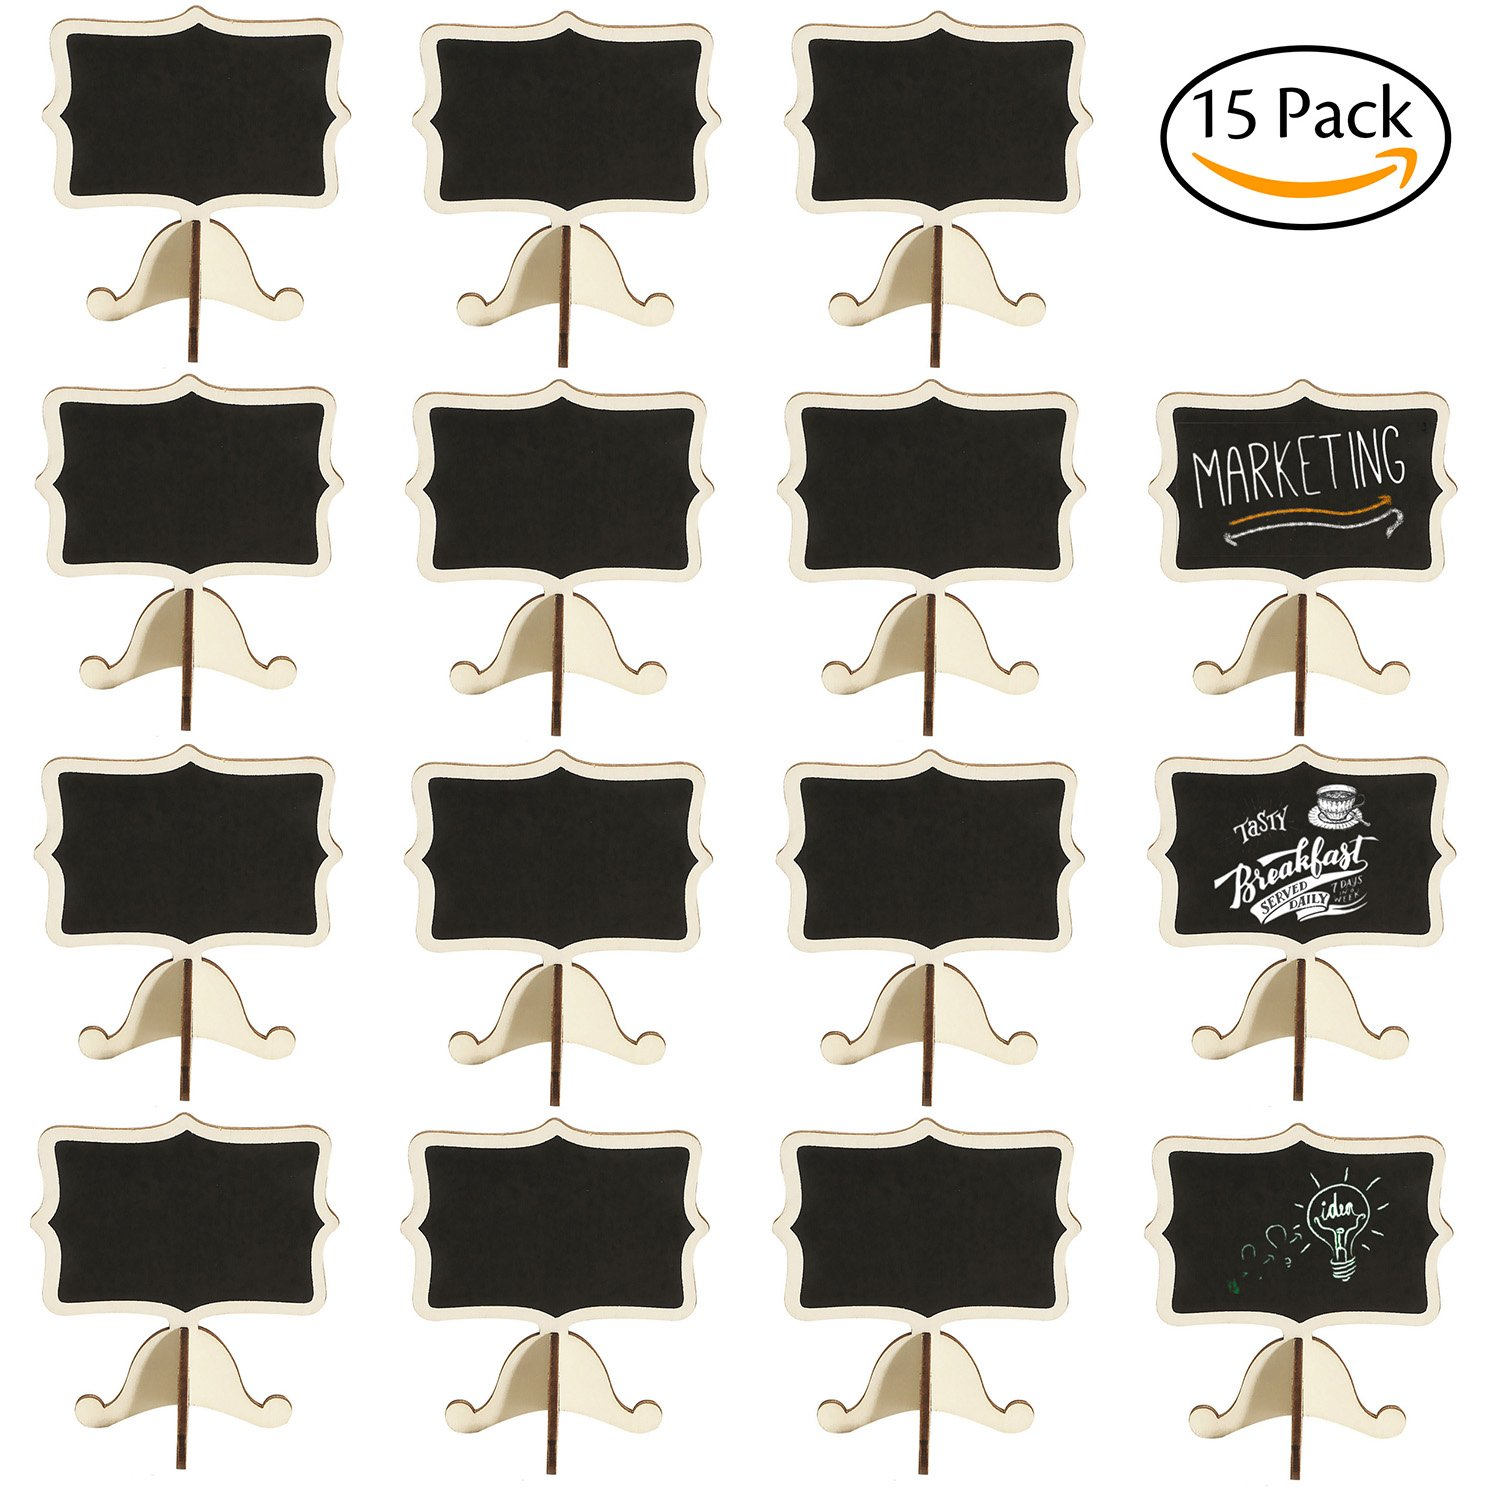 Leyaron 15 Pack Mini Chalkboards Place Cards With Easel Stand   Wood  Rectangle Small Chalkboard Signs